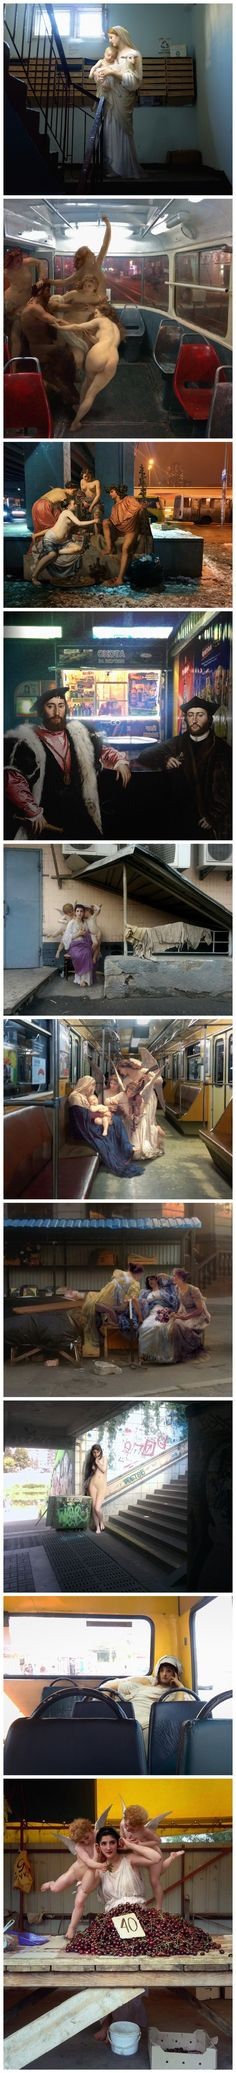 Alexey Kondakov - classic paintings in modern urban settings, art, photography, photo manipulation, fan art